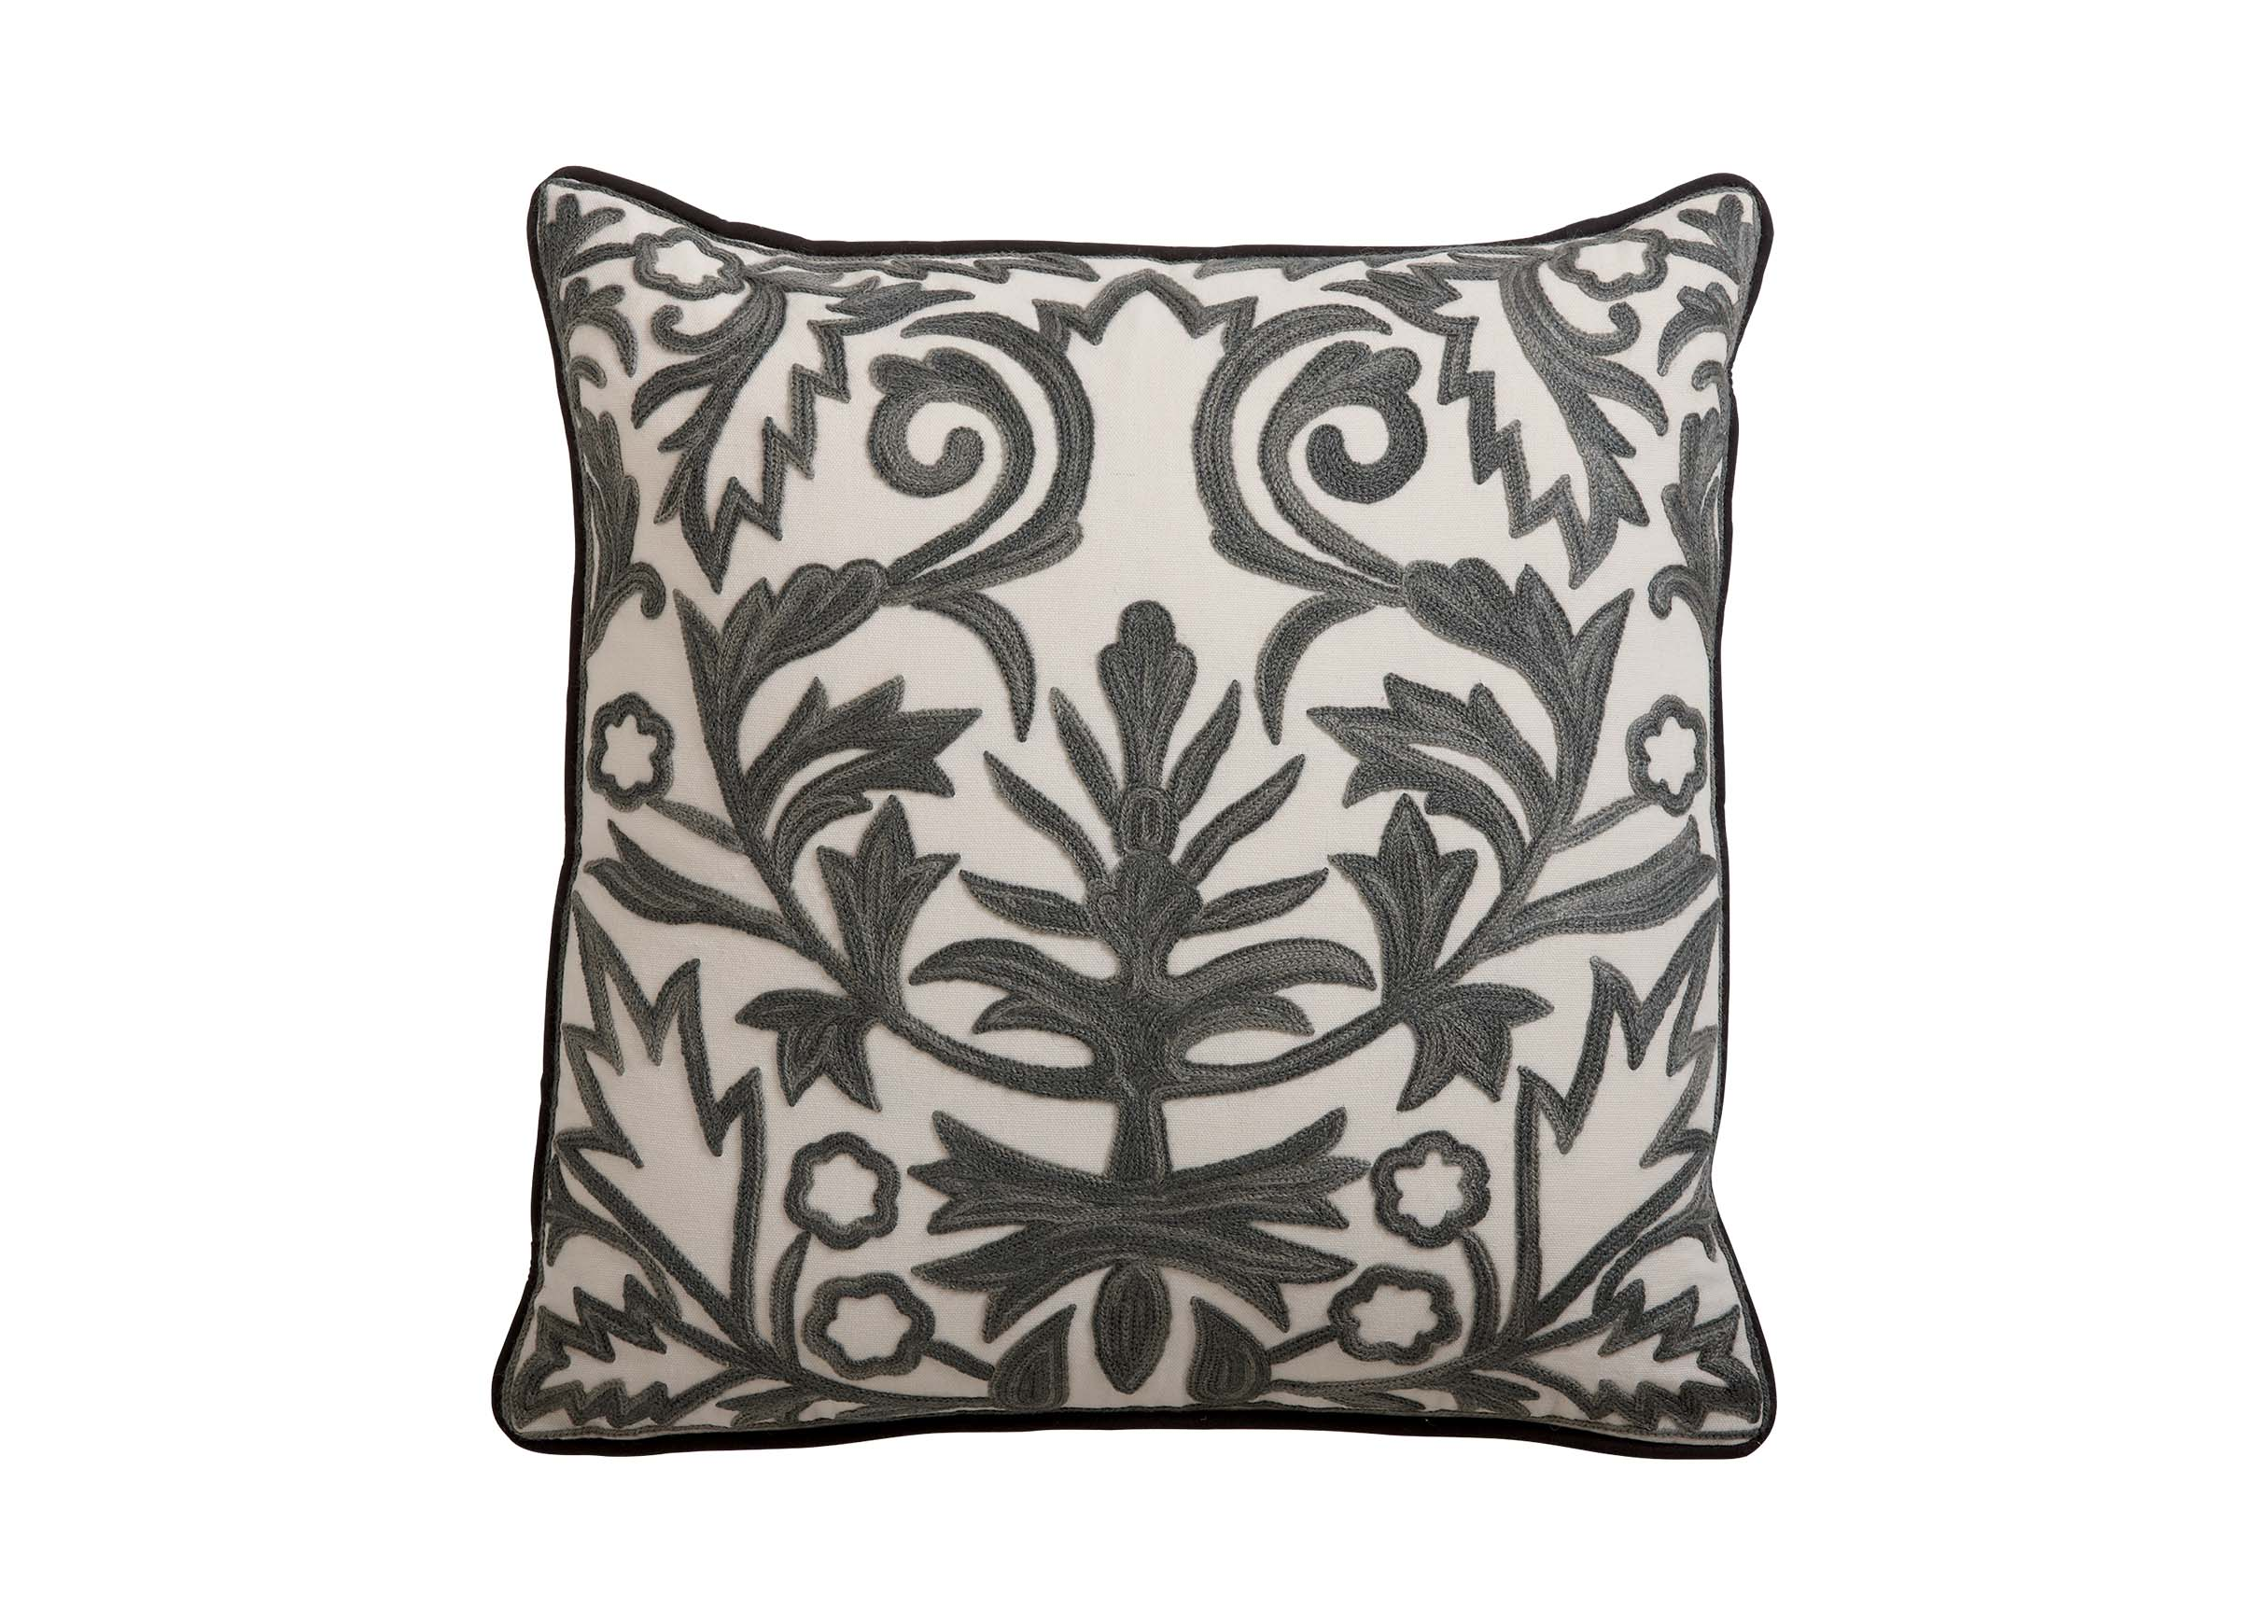 tomfoolerys trellis decorative pillow imperial accent throw moroccan etsy info trina pillows turk navy